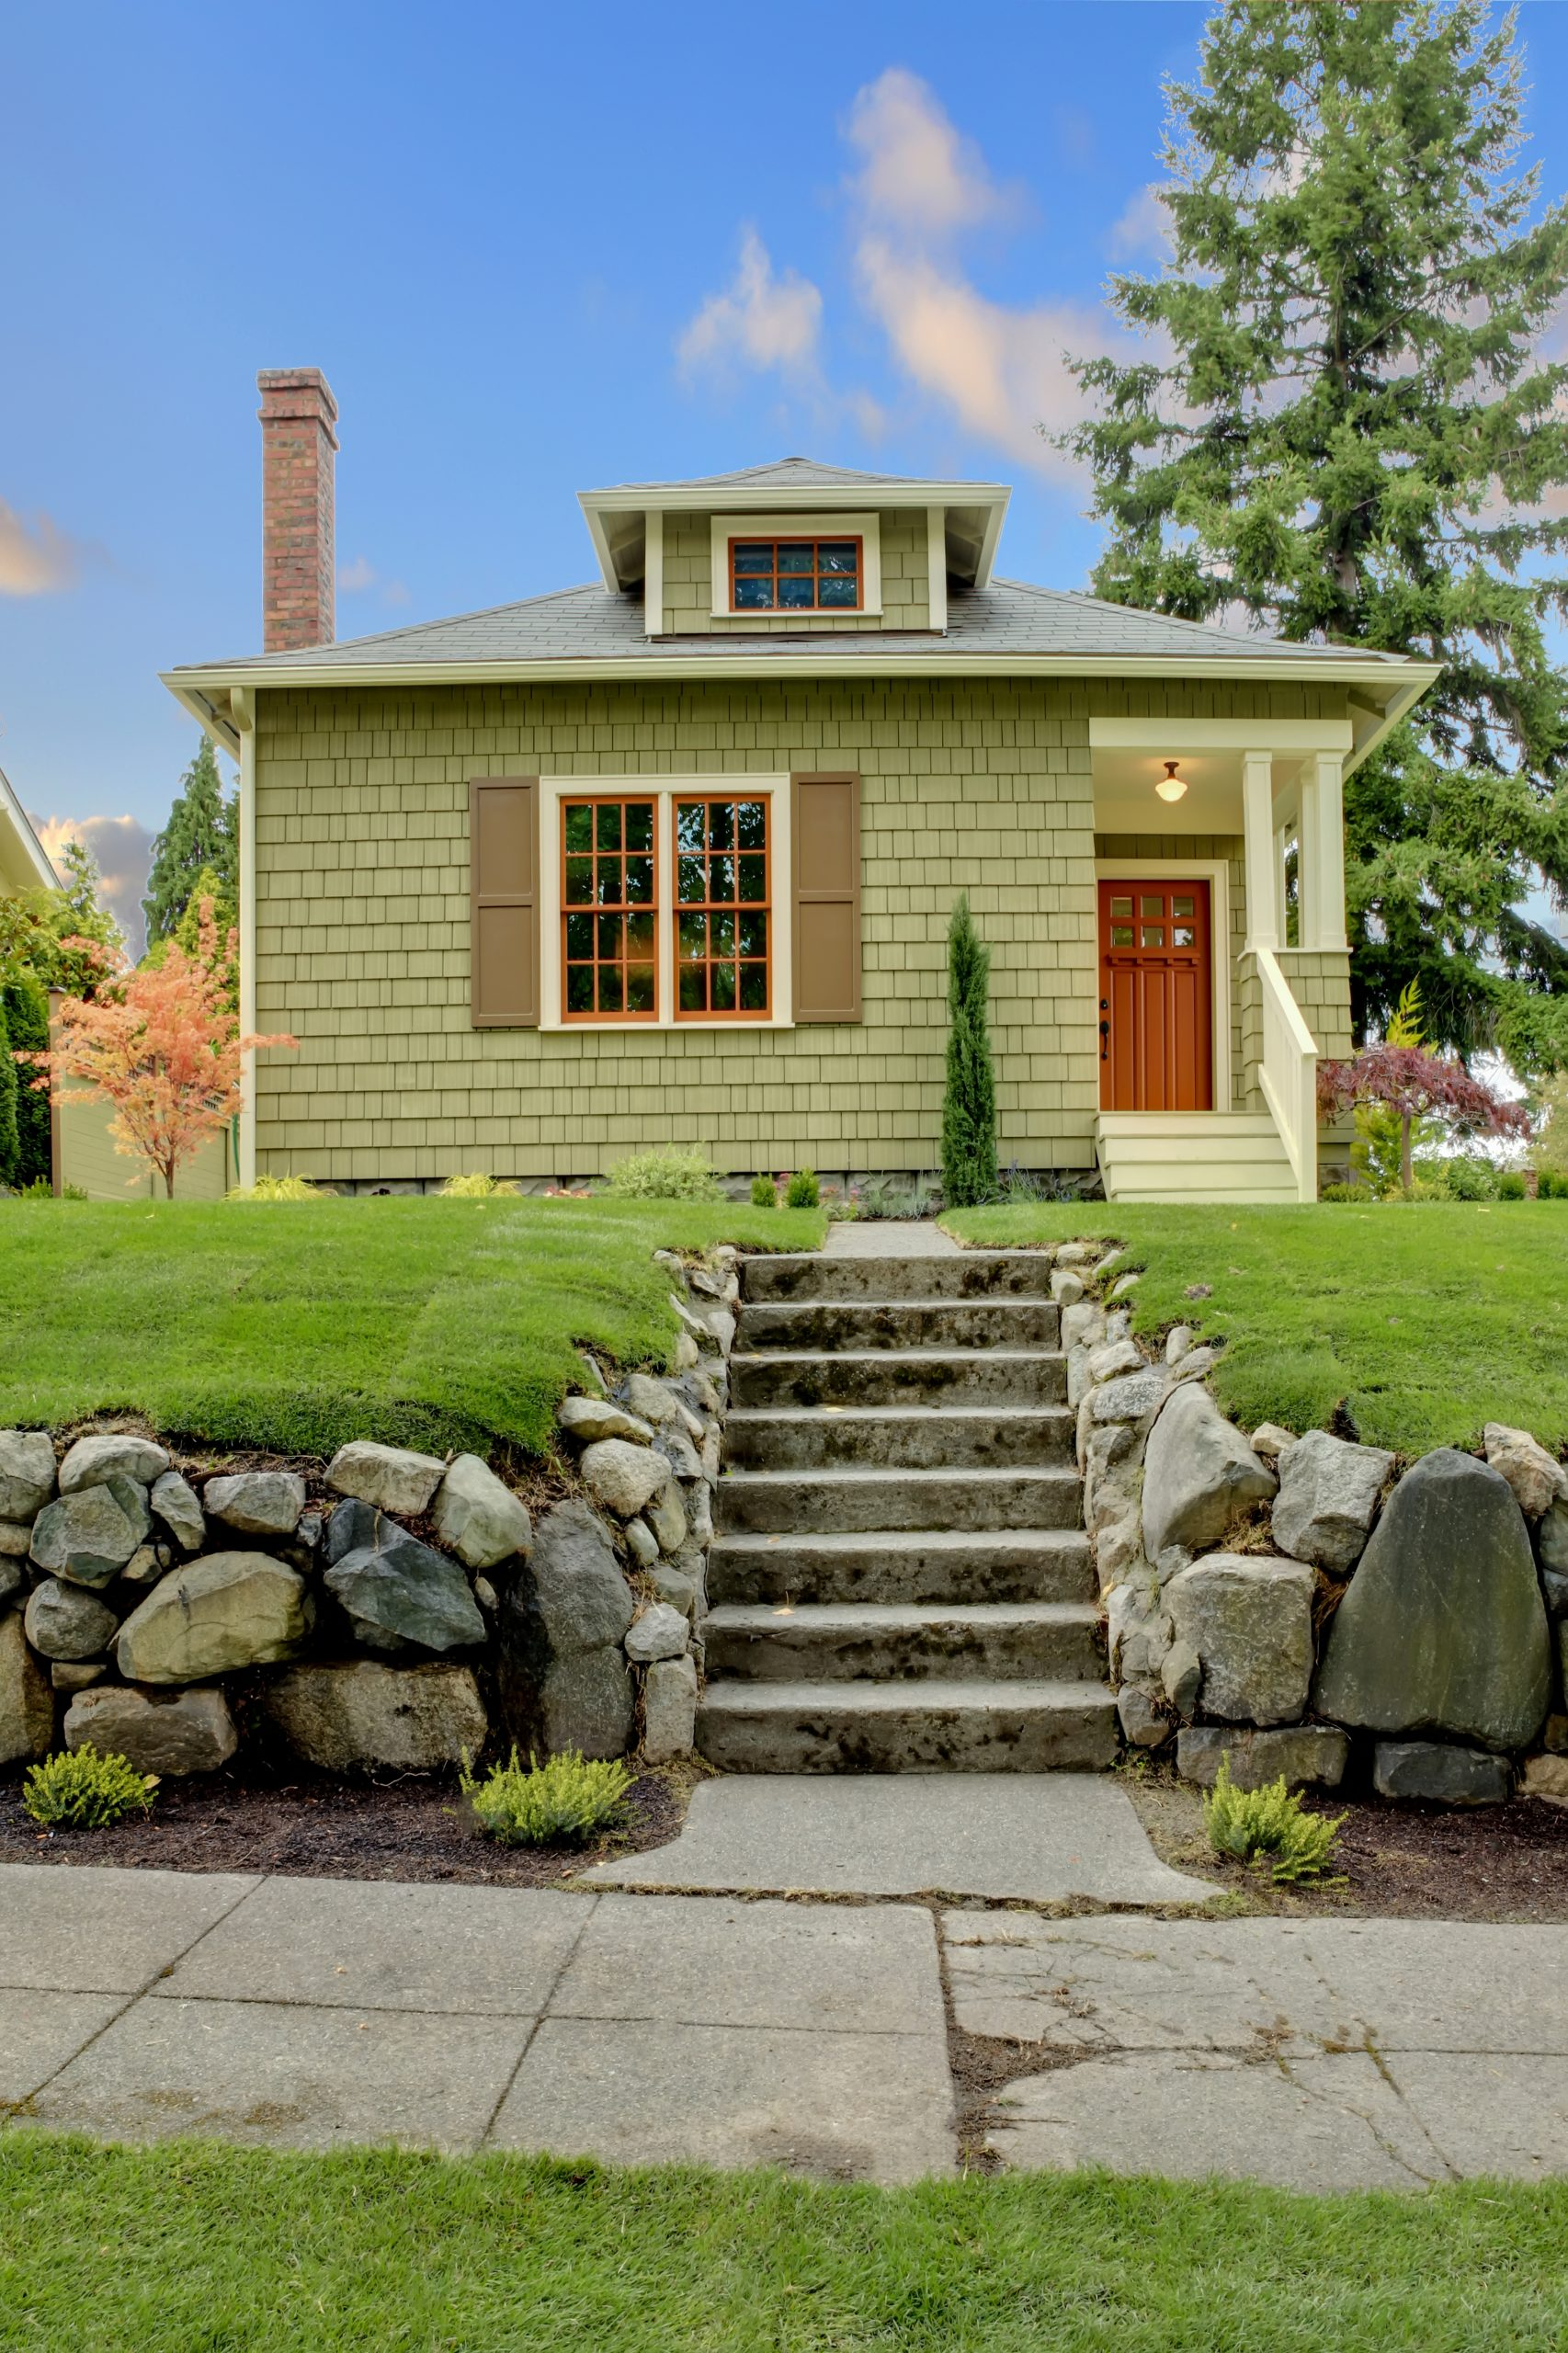 7 Things Every Homeowner Should Know Before Buying a Home with Septic